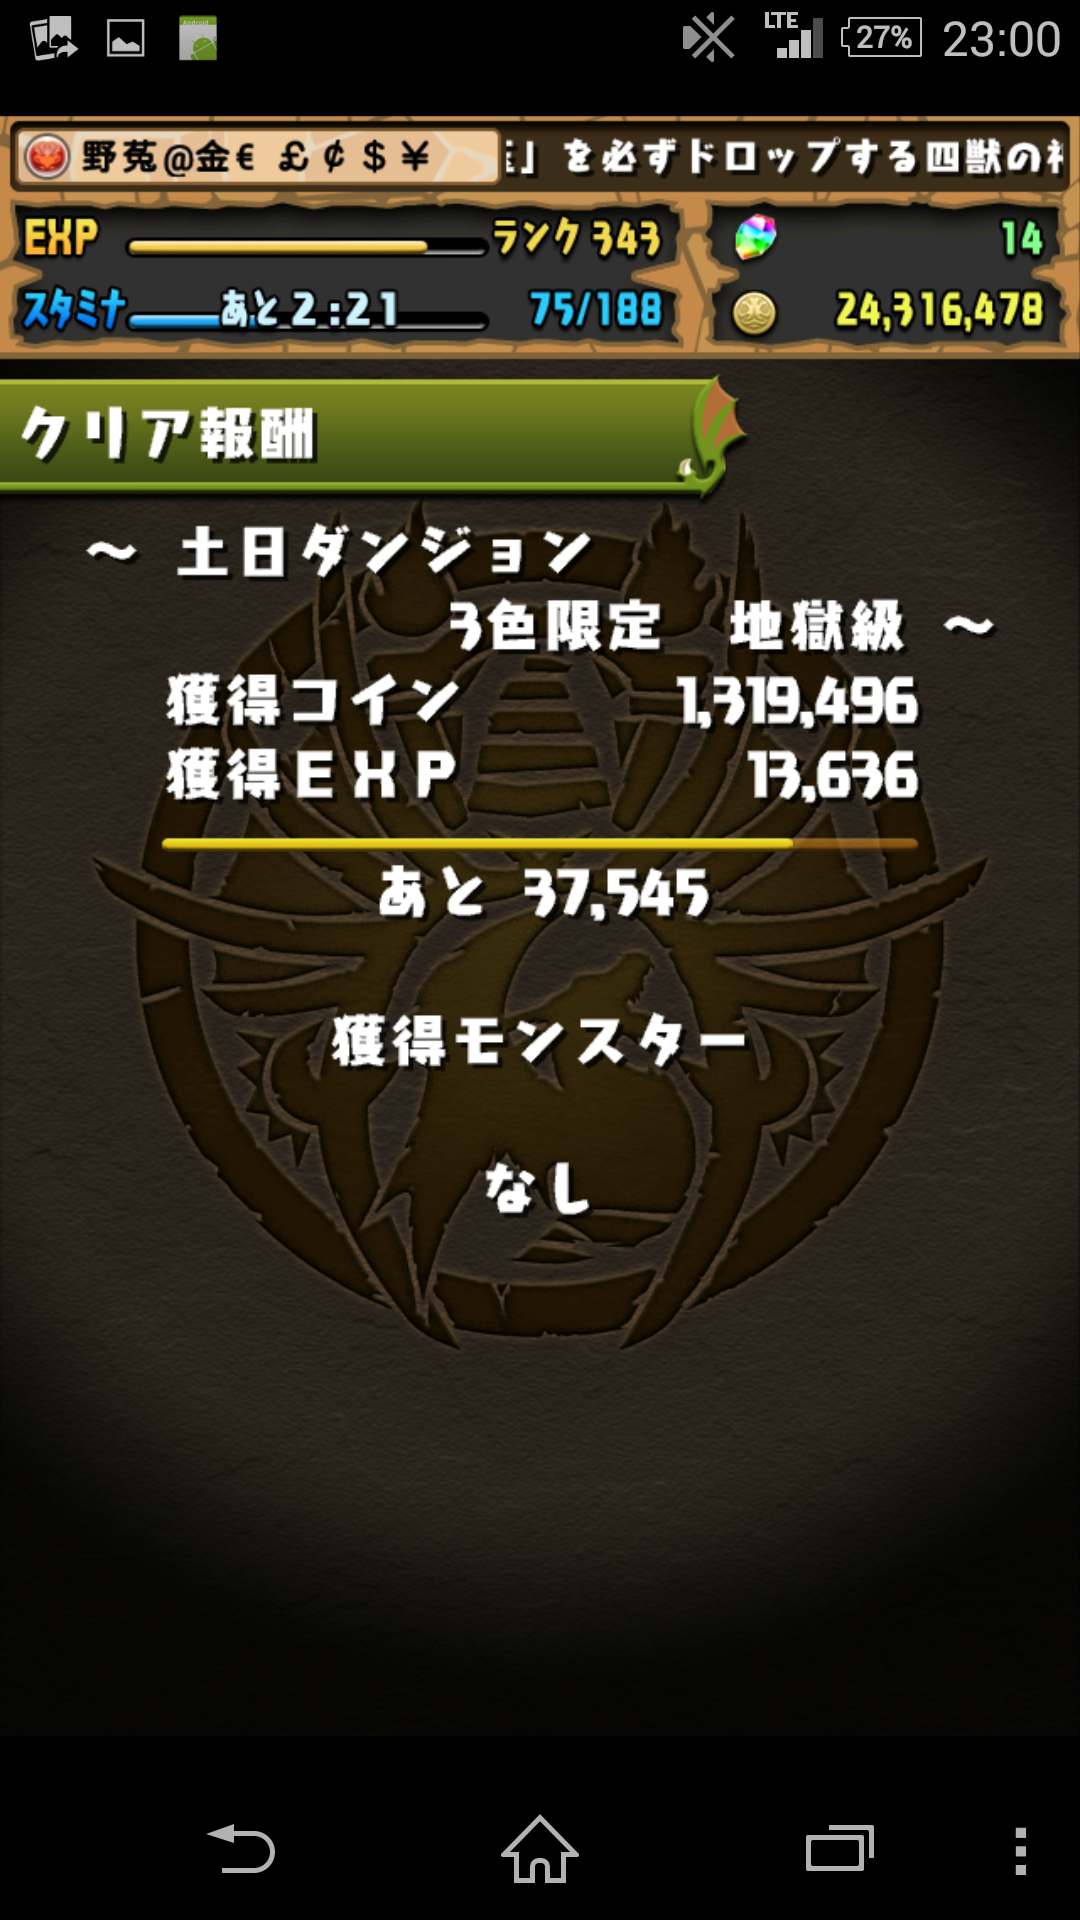 Screenshot_2014-09-20-23-00-11.png